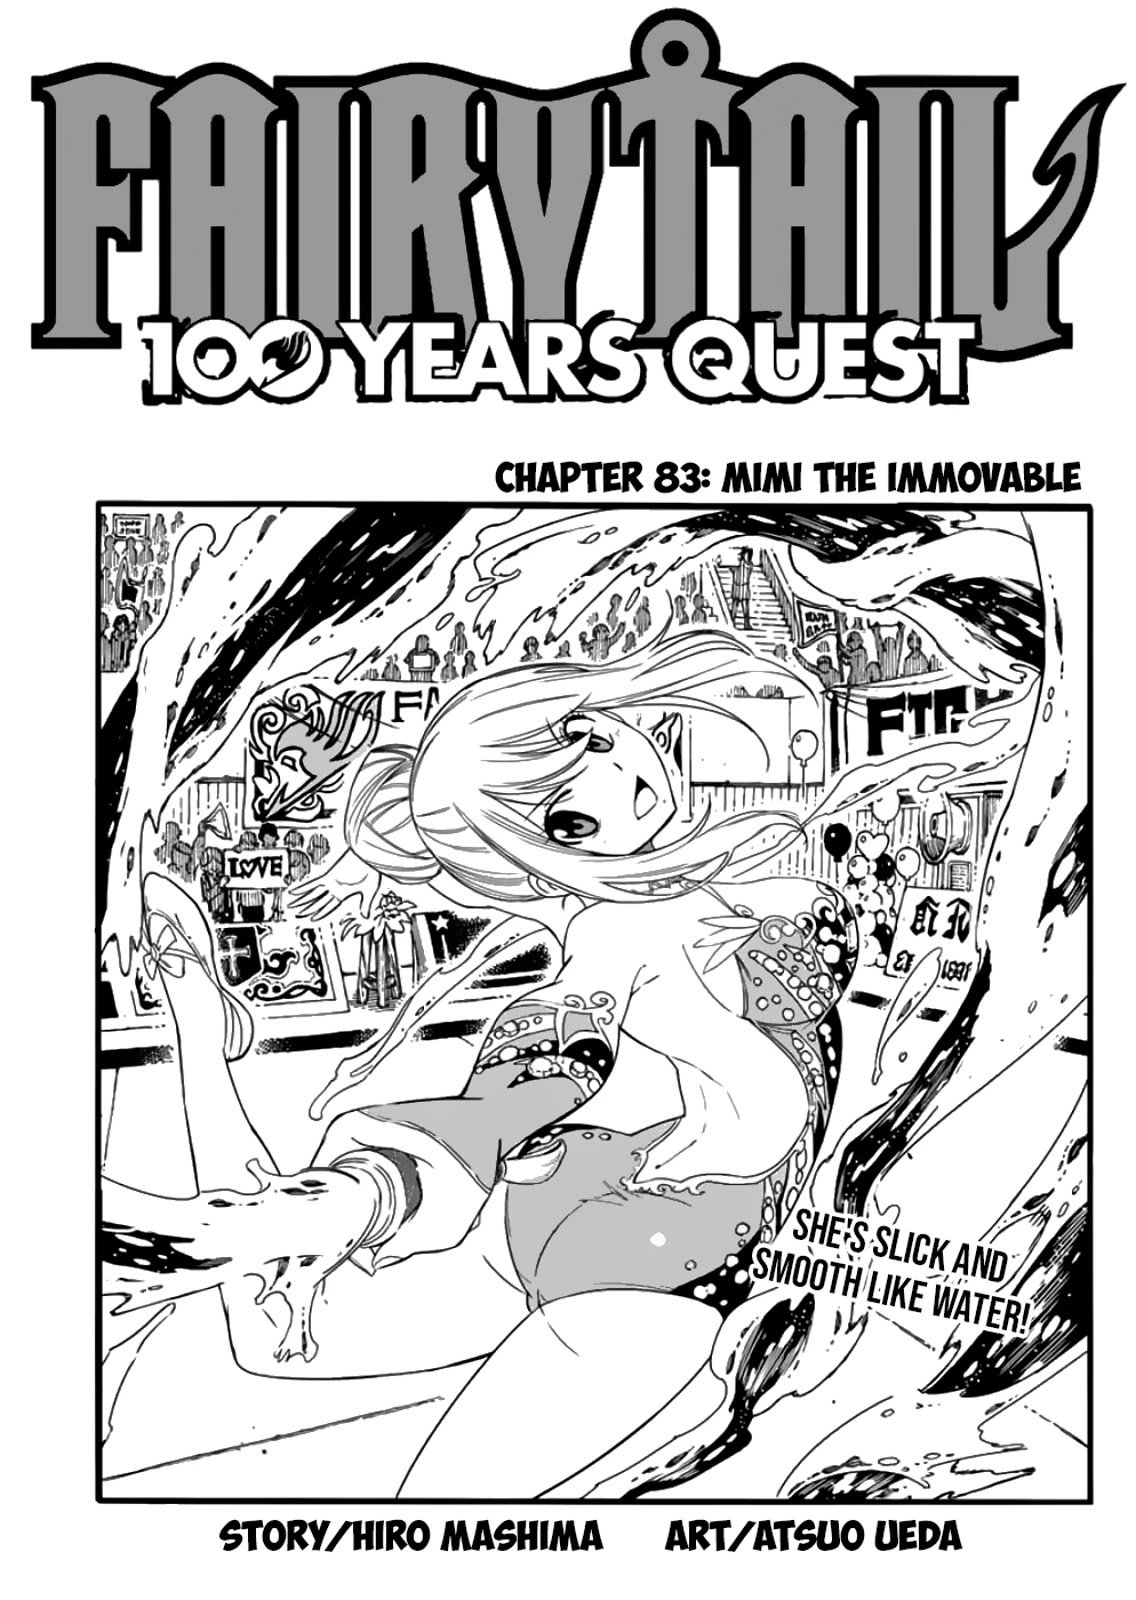 Manga Fairy Tail: 100 Years Quest - Chapter 83 Page 1